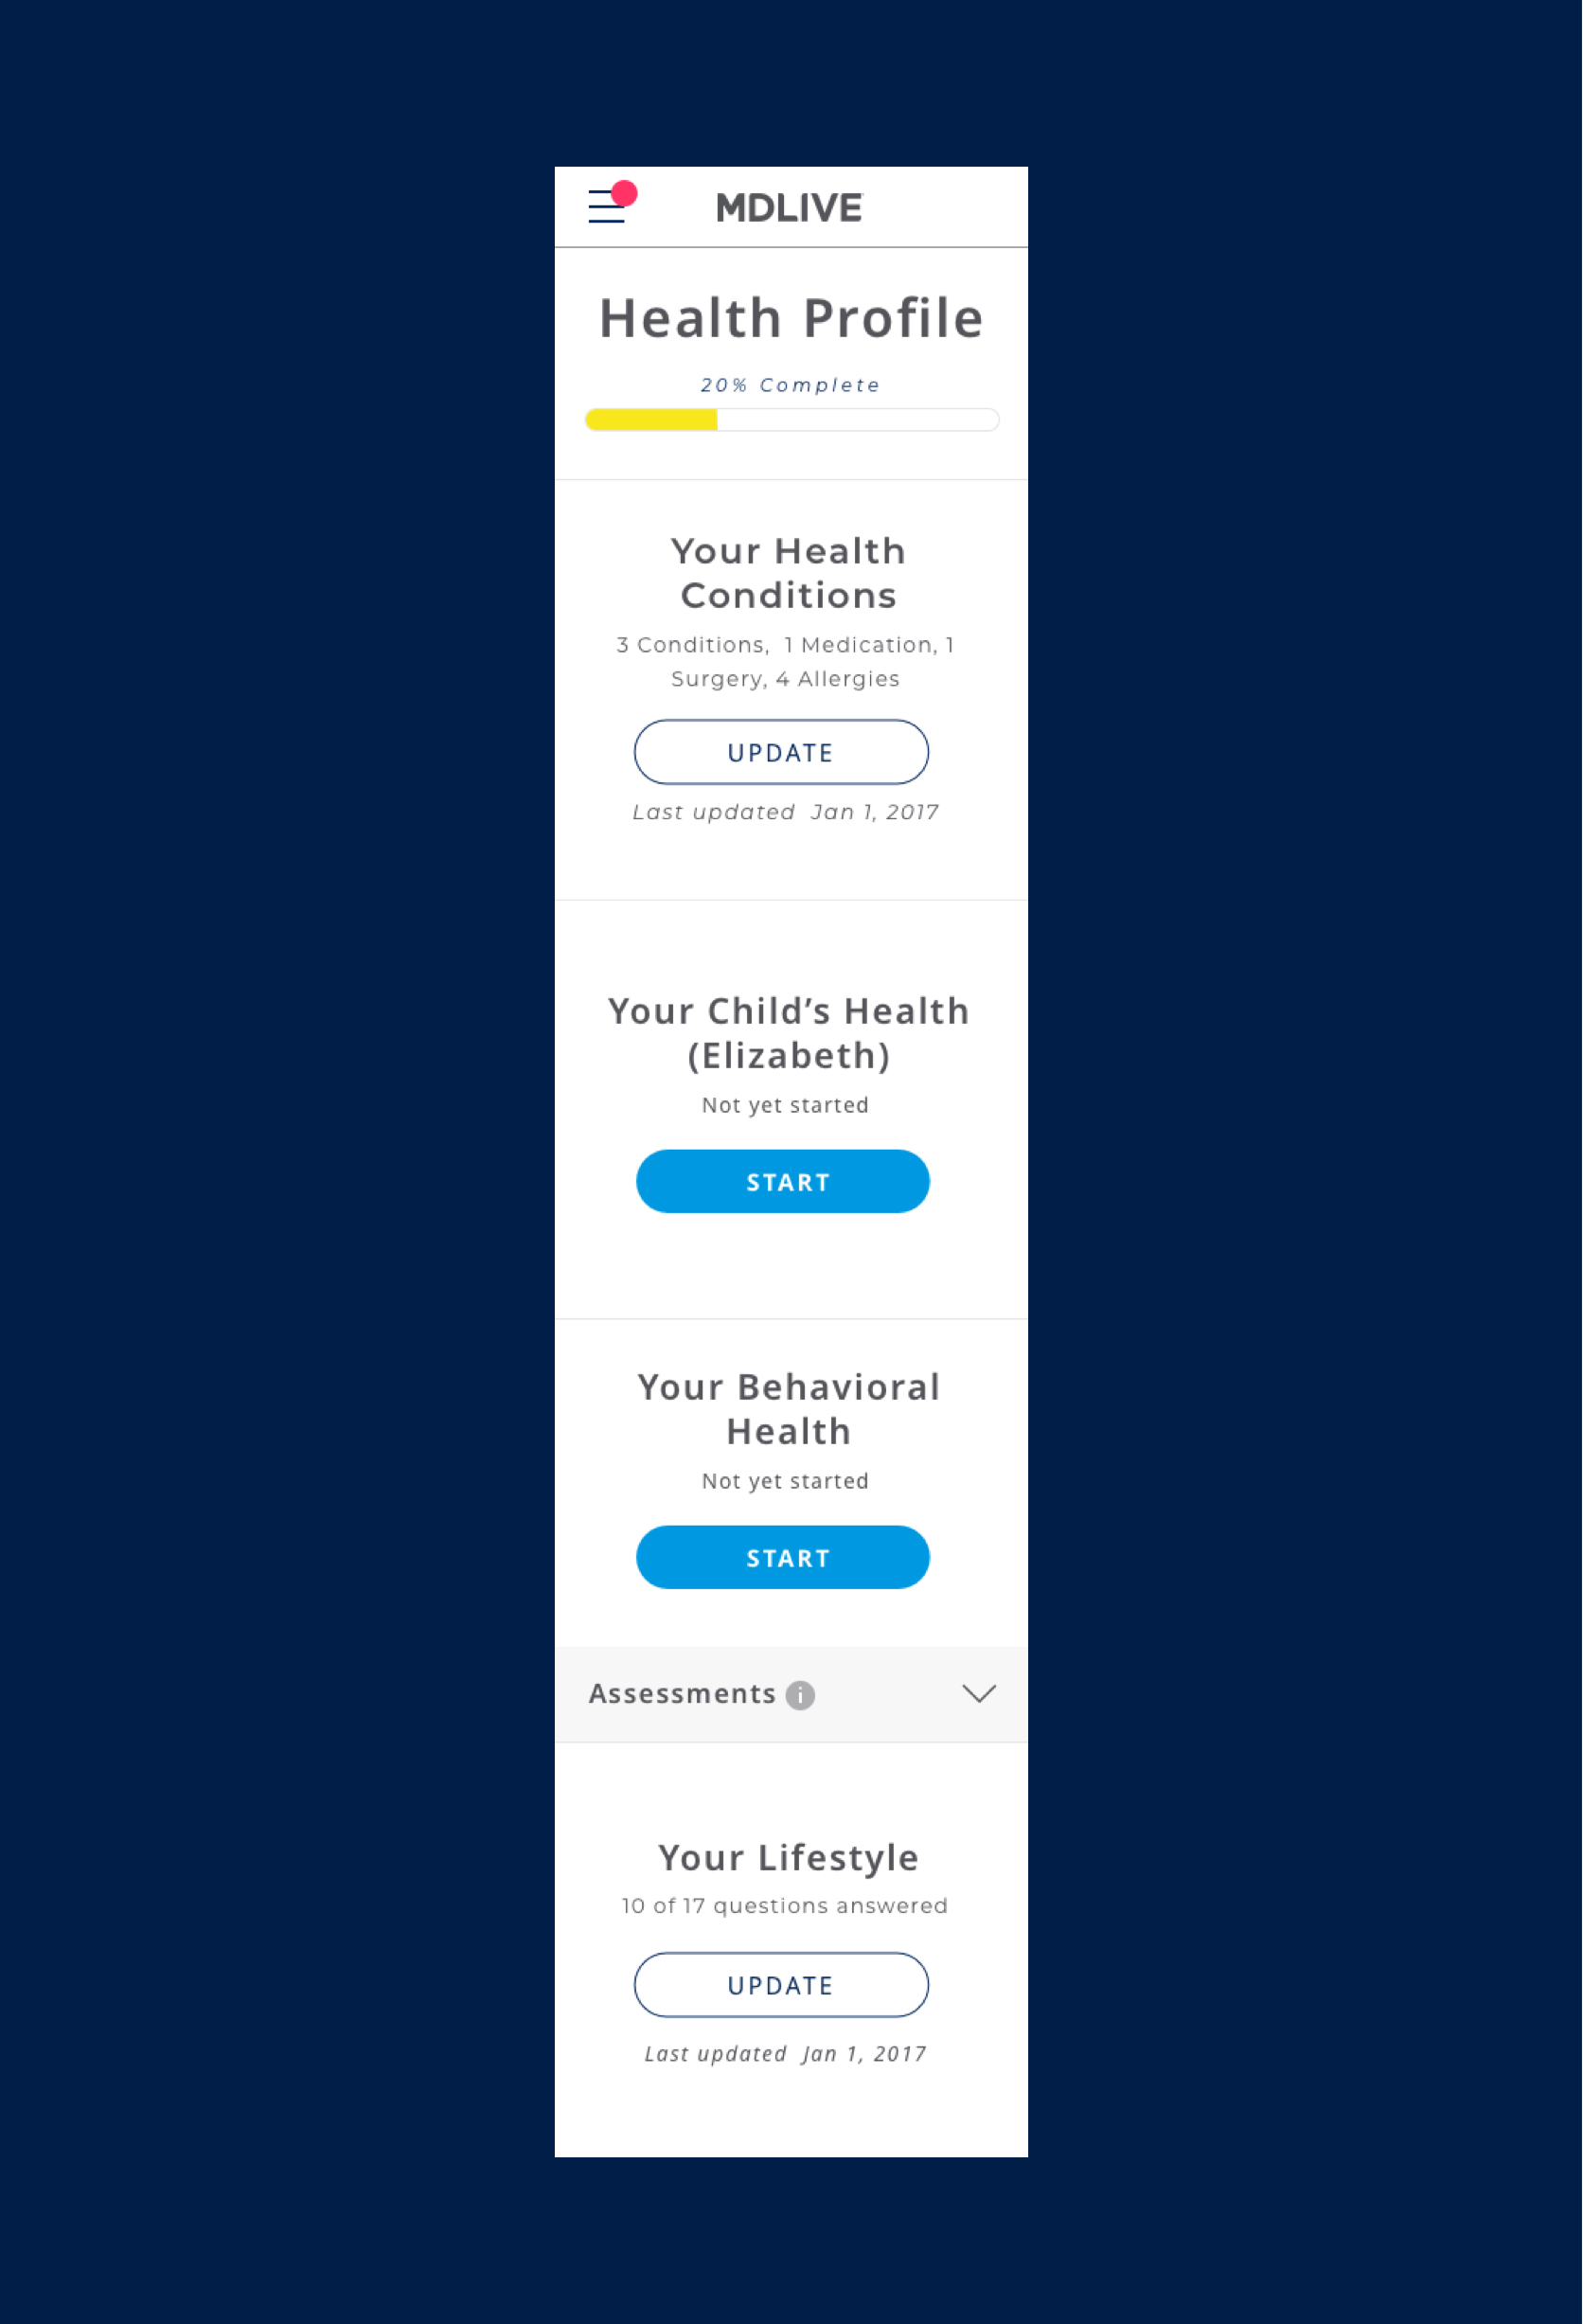 Mobile version of user profile screen for MDLIVE